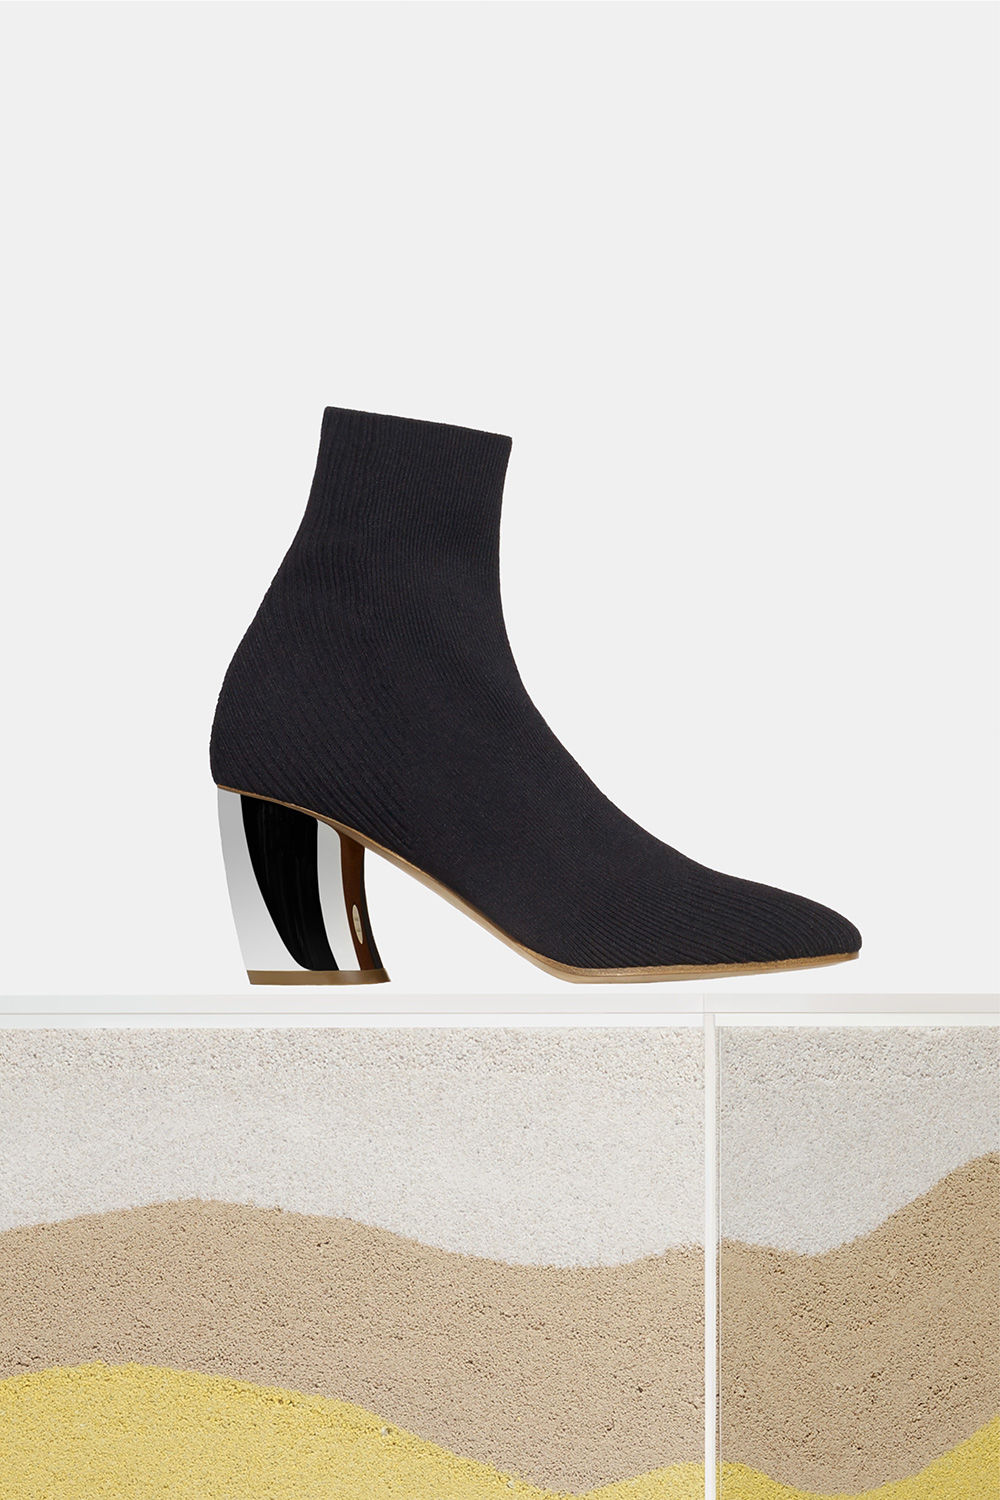 proenza schouler spring 2018 black knit metal heel ankle boot